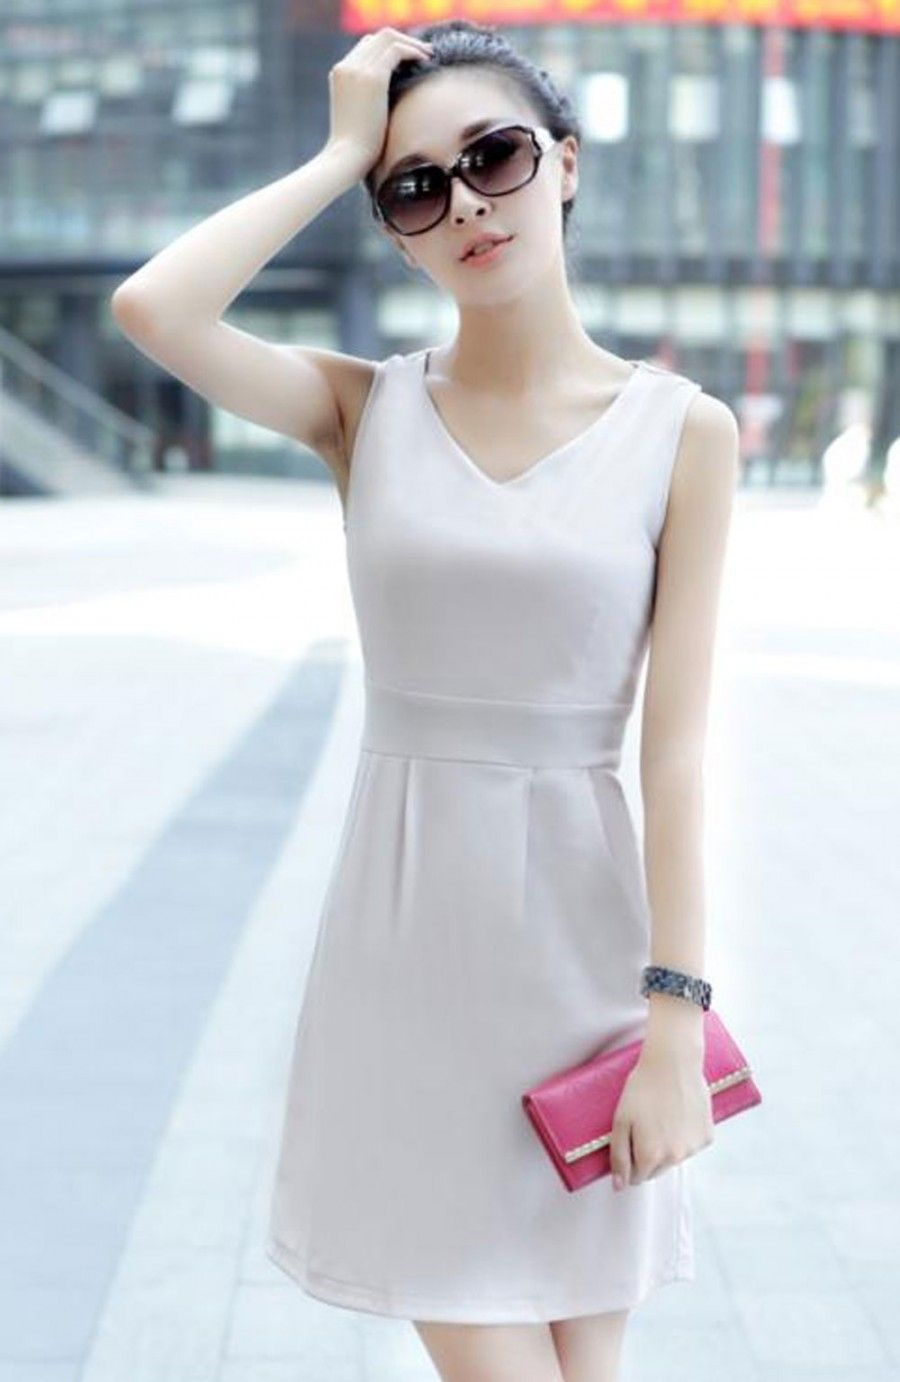 V-neck sleevless dress with pleates in the bottom  [Rs3,100.00]